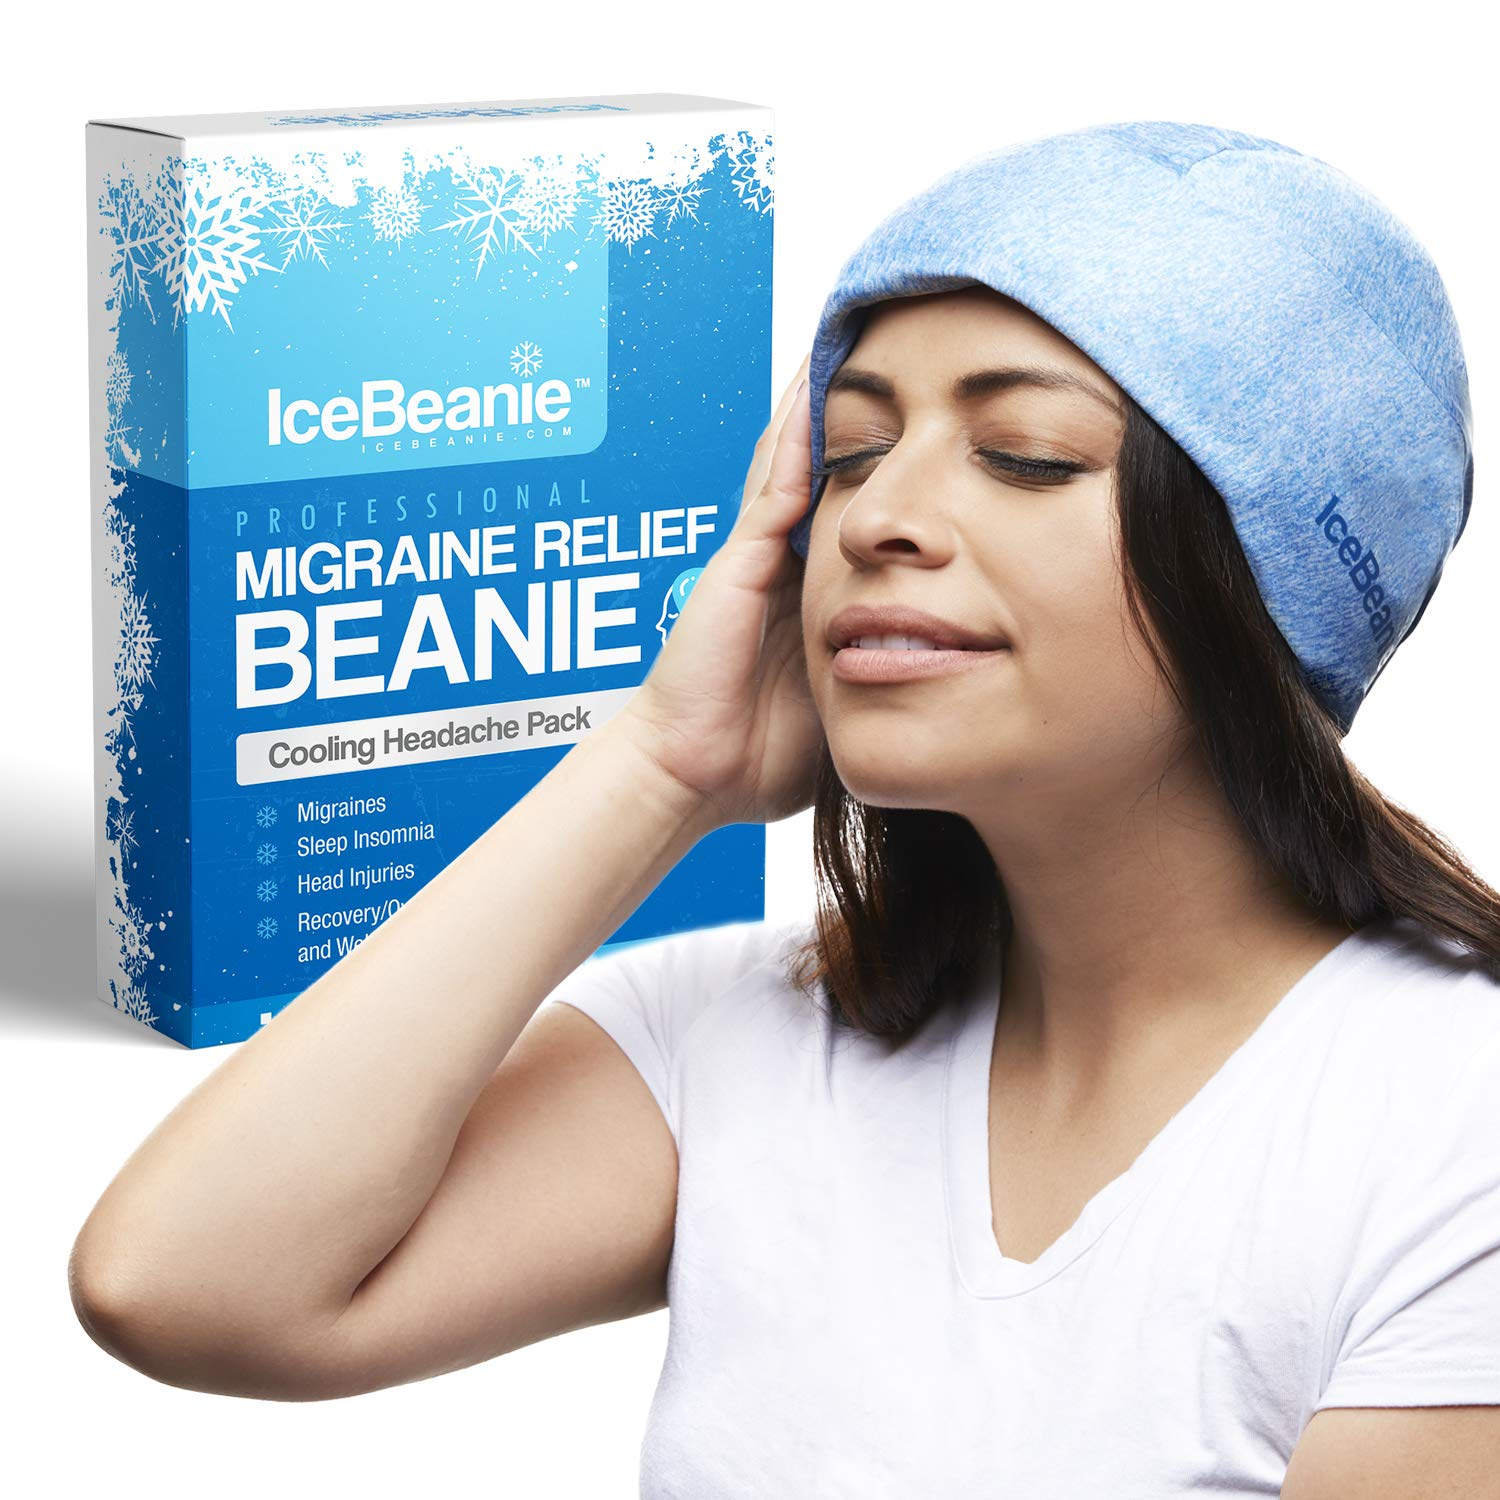 IceBeanie Natural Migraine Relief - Eliminate Tension Headaches, Wearable & Freezable Acupressure Designed Cold Pack Hat, Soothing Compression Relieves Pain Associated with Overexertion, Aches & Fever by ICE BEANIE